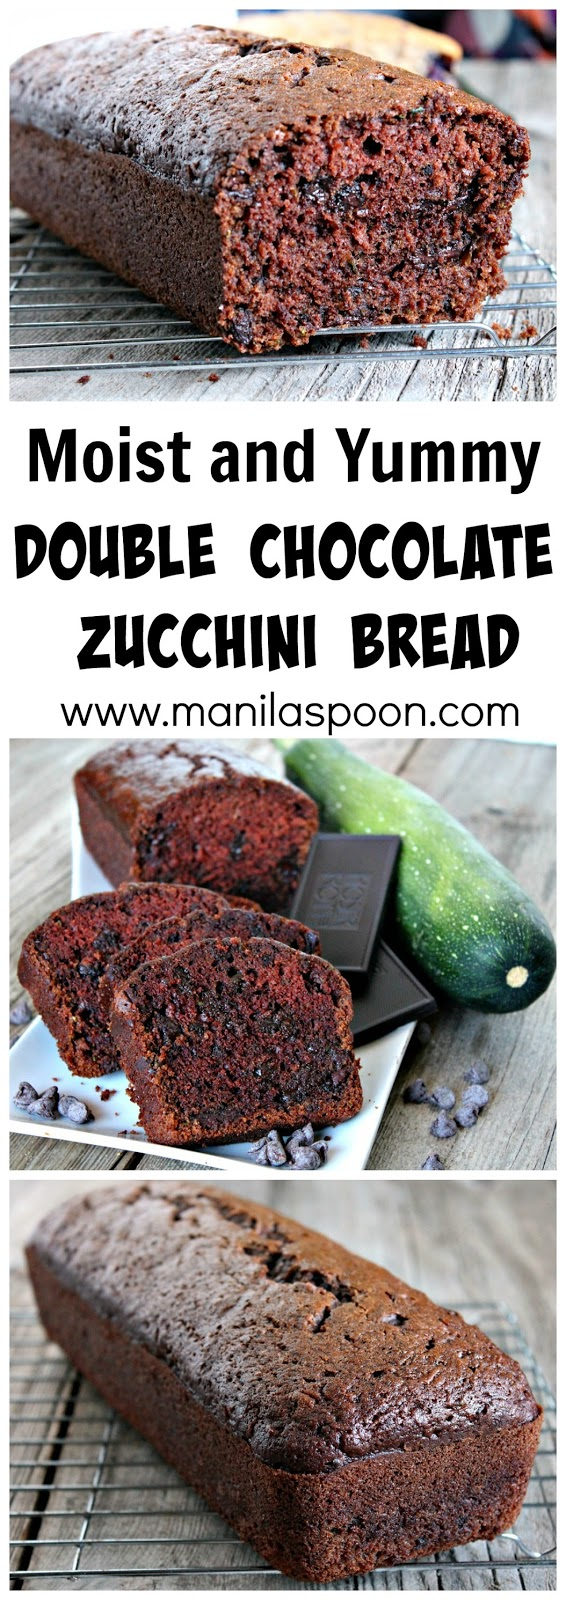 Super-moist, tender and delicious is this Double Chocolate Zucchini Bread. My kids really love this and they don't care that there are veggies in it. It's that good! #double #chocolate #zucchini #bread